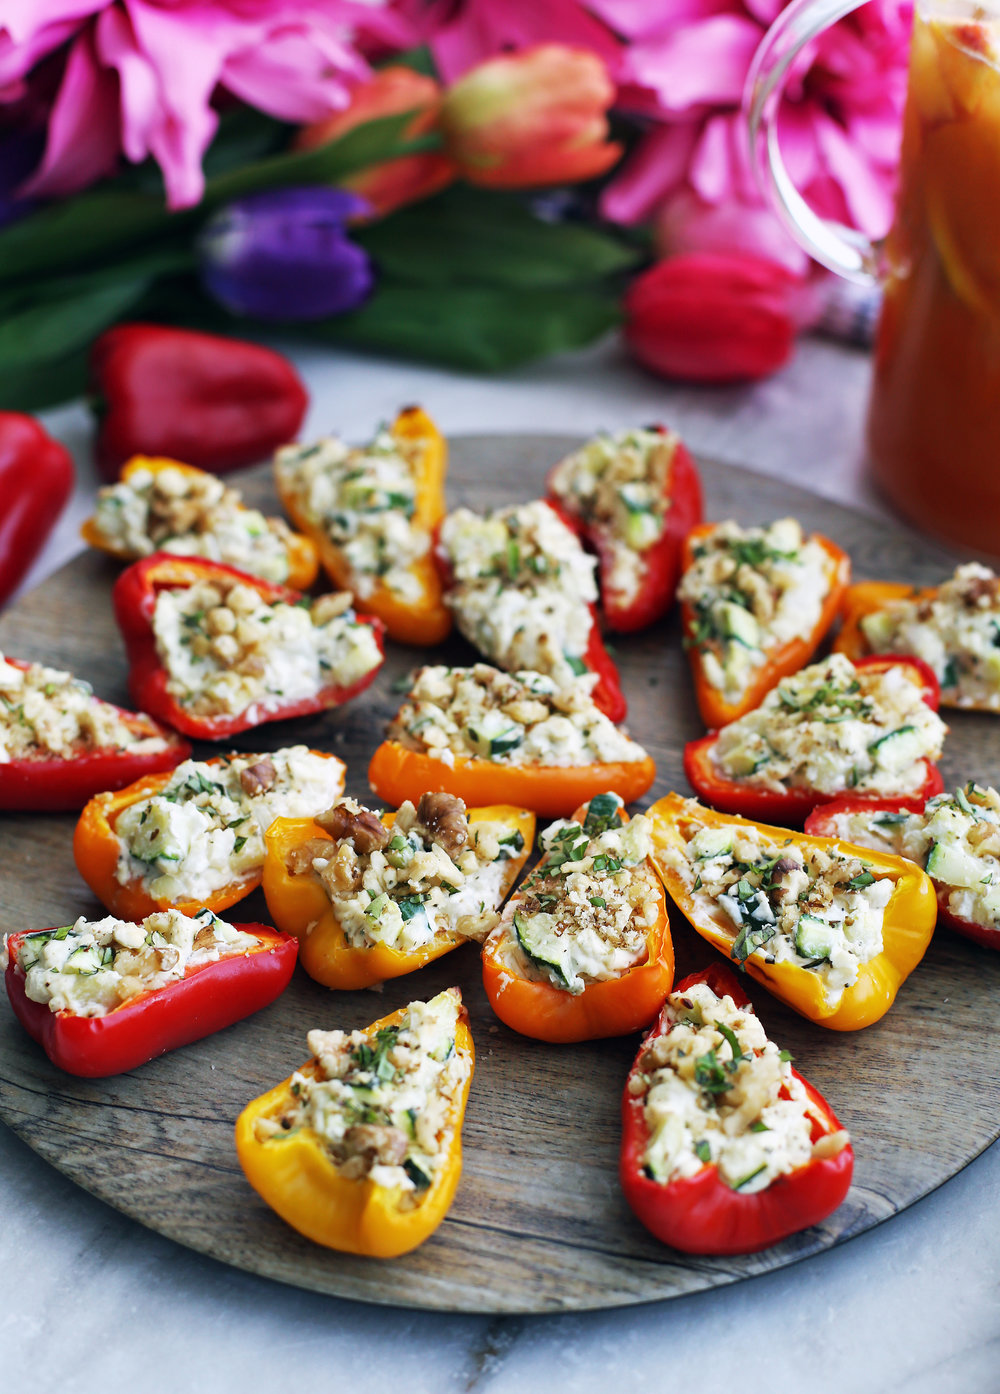 Baked mini bell peppers halves filled with a zucchini, onion, and cream cheese filling on a round wooden platter.